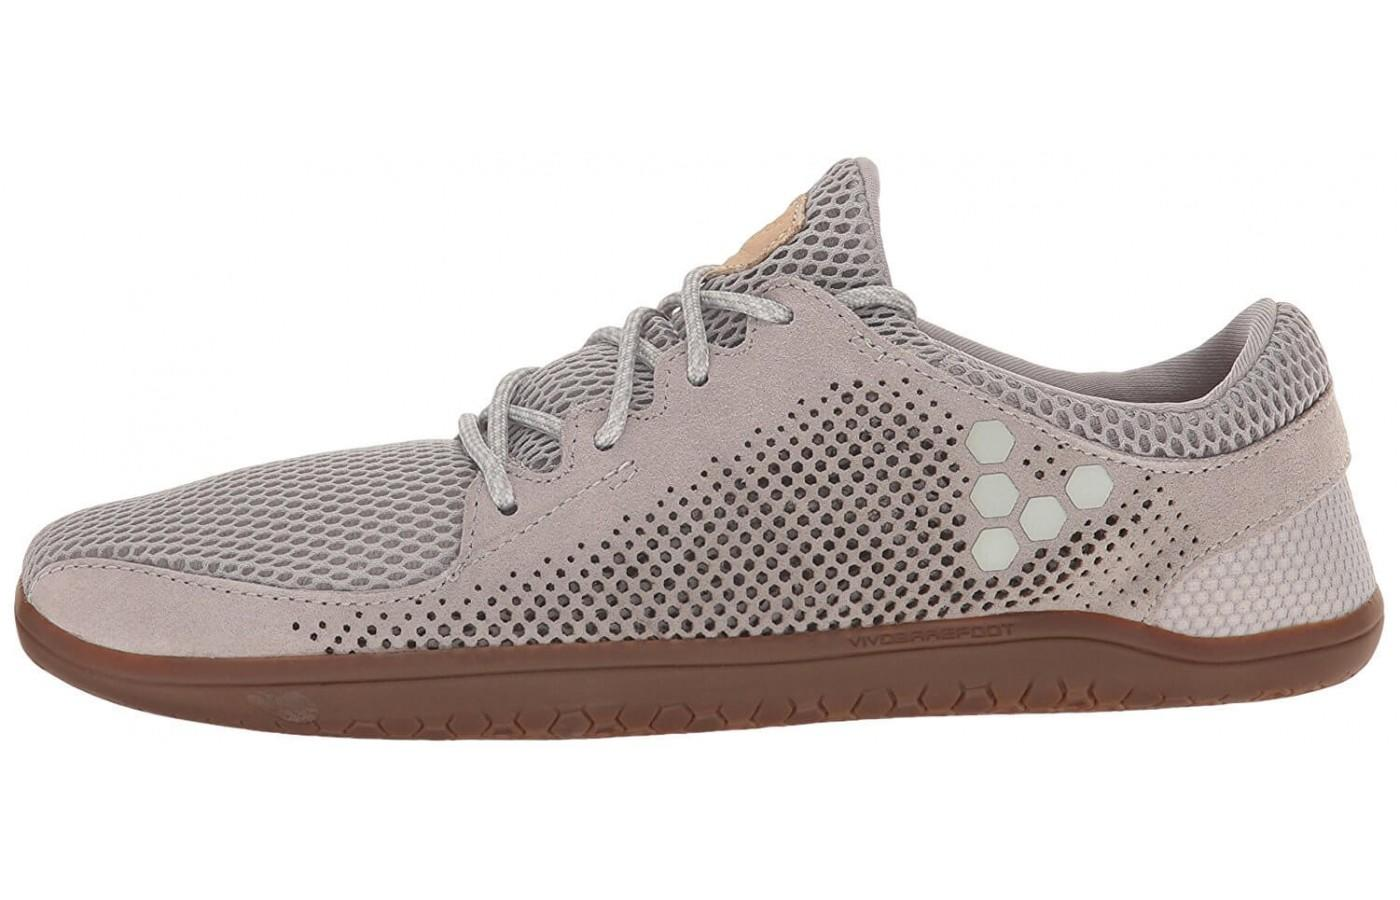 The Vivobarefoot Primus Trio has a low cut for full ankle mobility